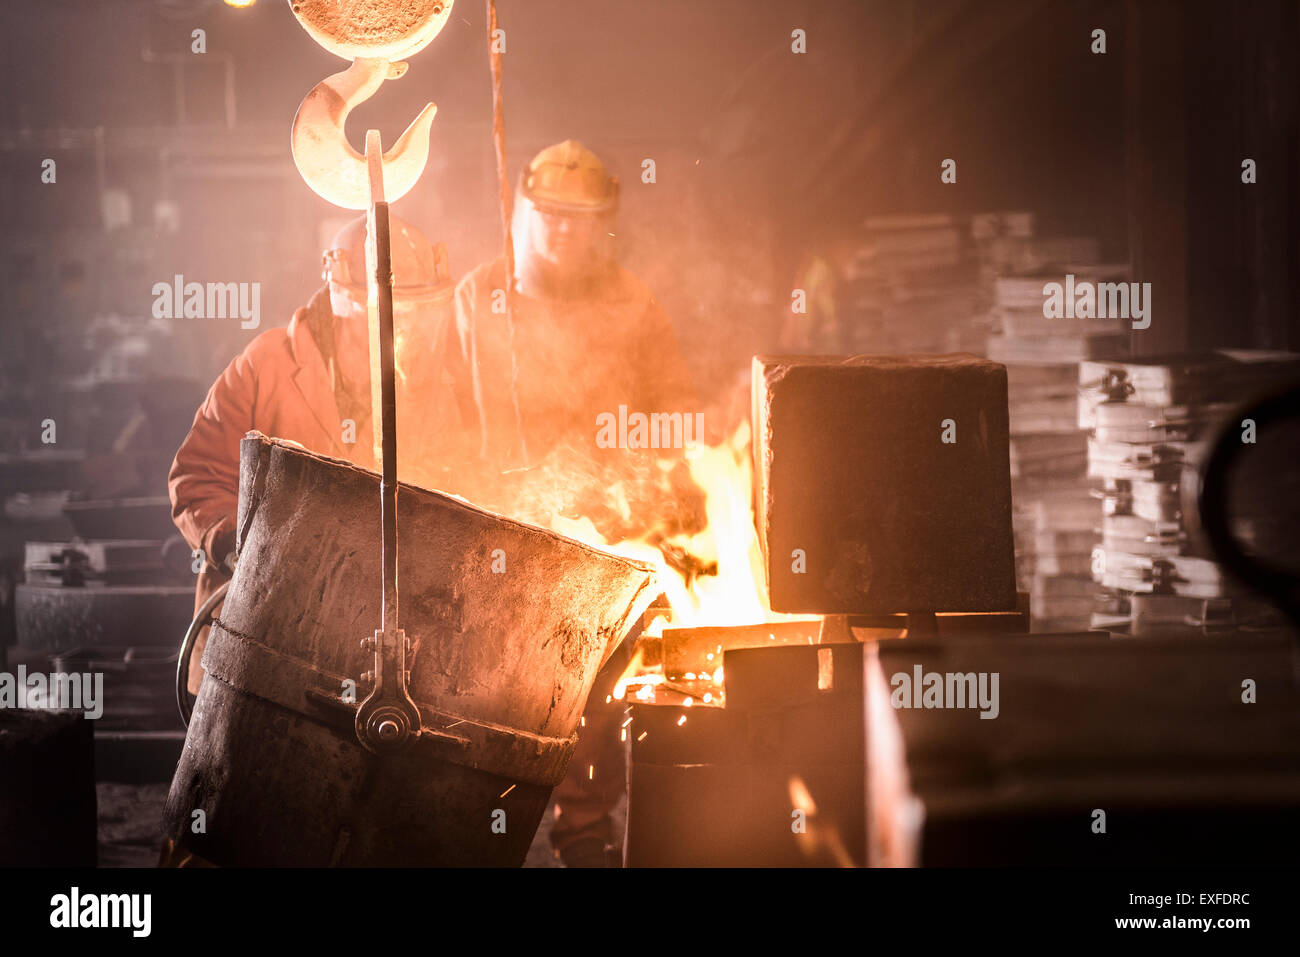 Workers pouring molten metal into moulds from flask in foundry - Stock Image